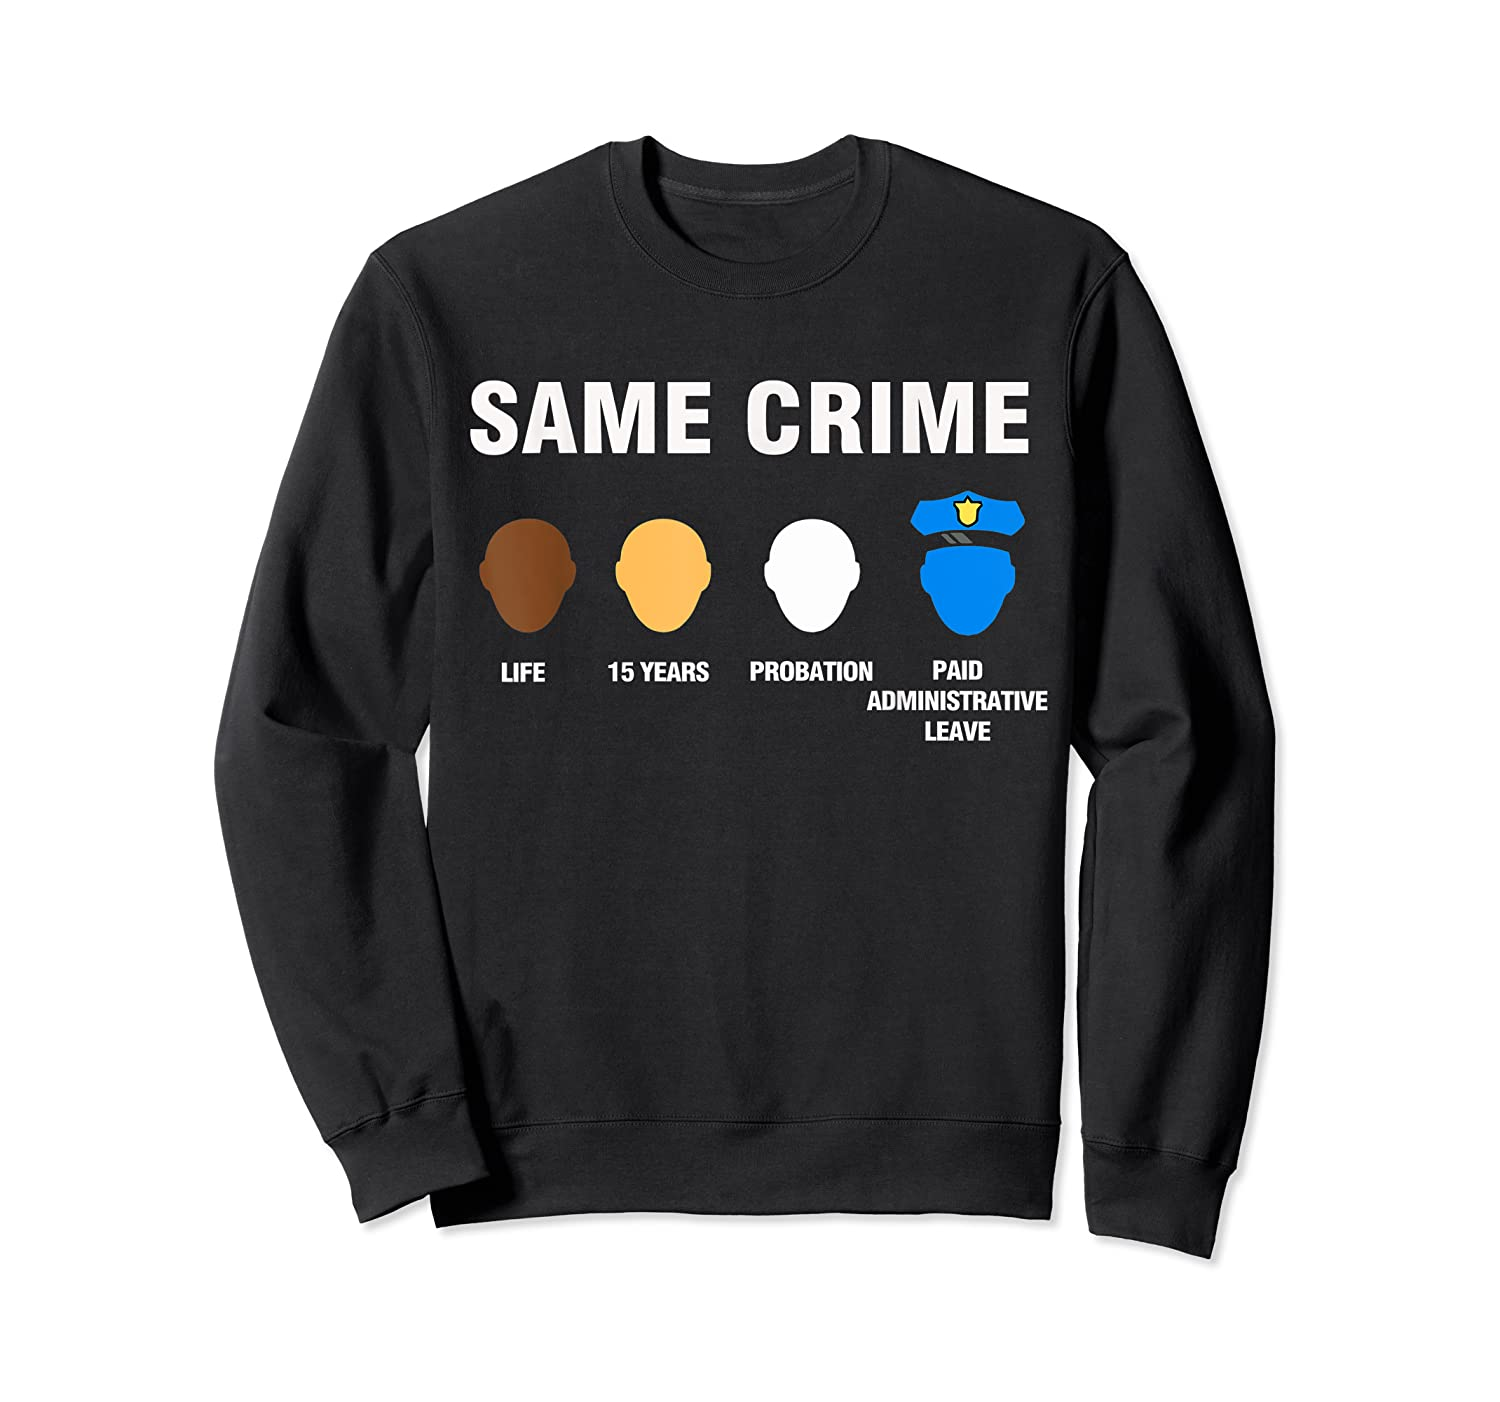 Same Crime Life 15 Years Probation Paid Administrative Leave Shirts Crewneck Sweater